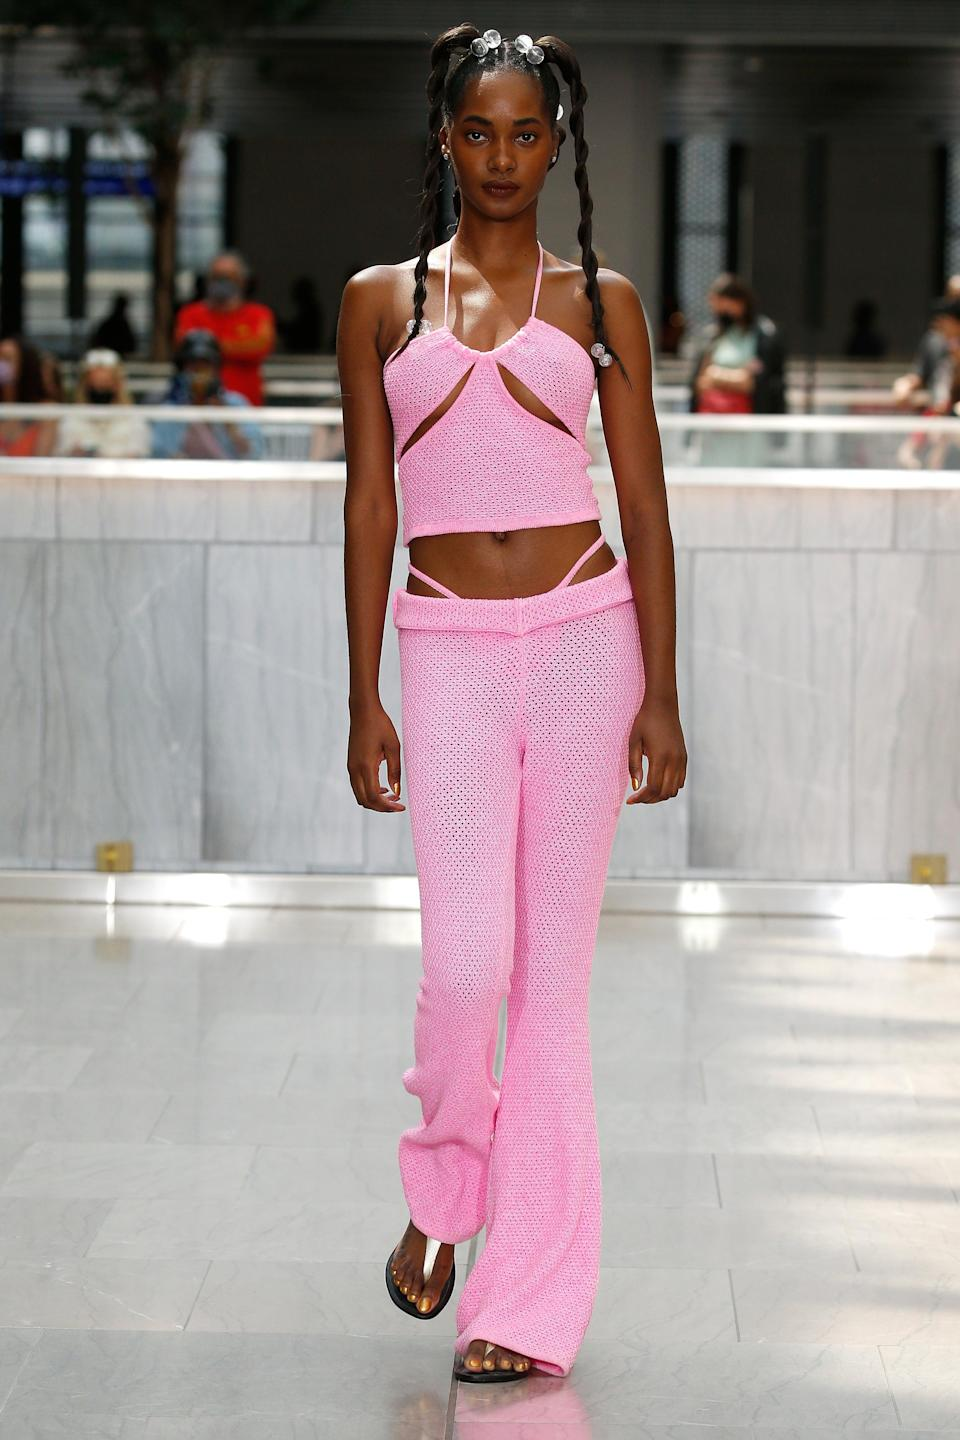 <h2>Over Undies</h2><br>That, or you could always just let your underwear roam free, an eye-catching trend that was spotted at shows like Theophilo, Victor Glemaud, Maisie Wilen, and Saint Sintra. Gone are the days when your pants, skirts, and dresses were meant to be worn <em>on top of</em> your undergarments, a pair of standard-issue boyshorts or a bikini lurking unseen below. For spring, fashion's finest wants you to flash your panties… <em>on purpose</em>. <br><br><em>Victor Glemaud</em>